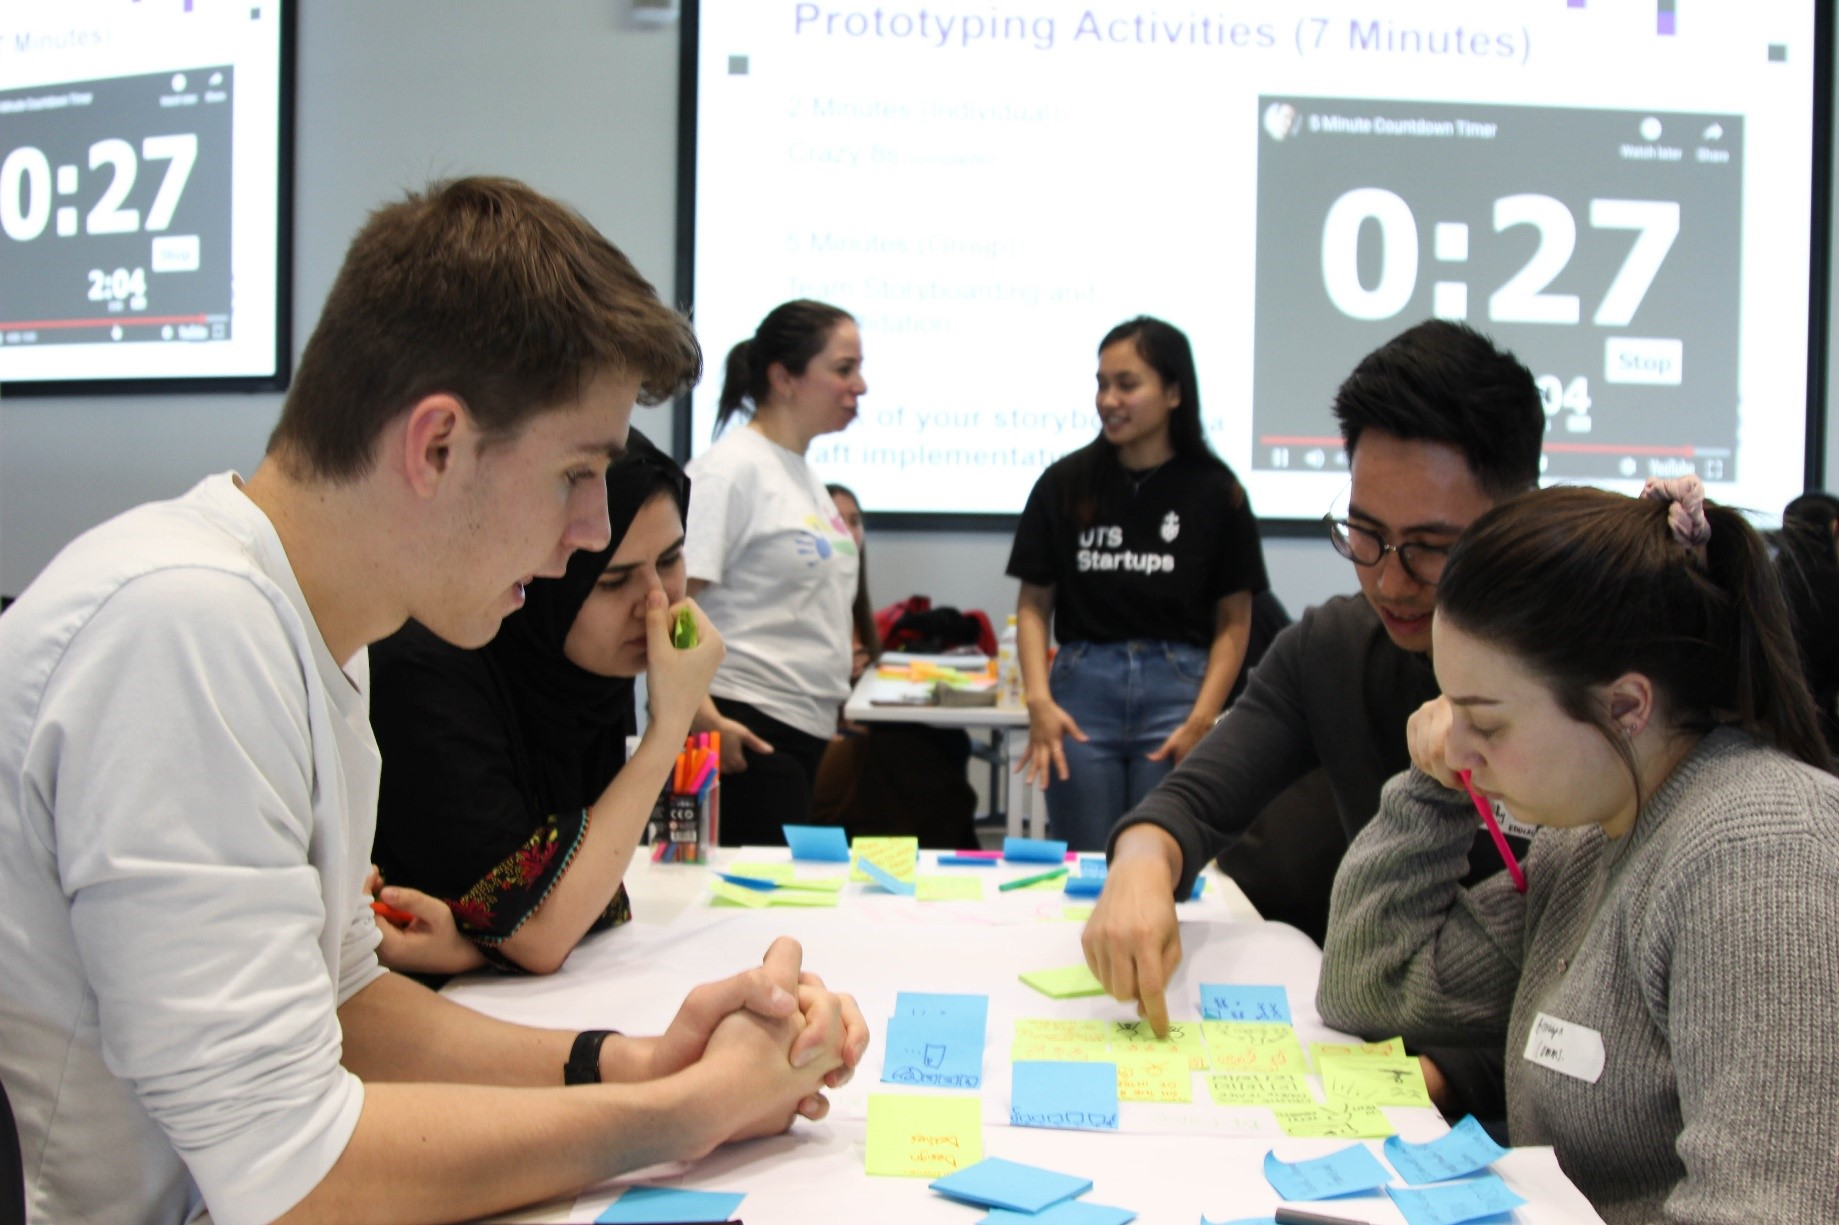 Students around a table, problem solving with post-it notes